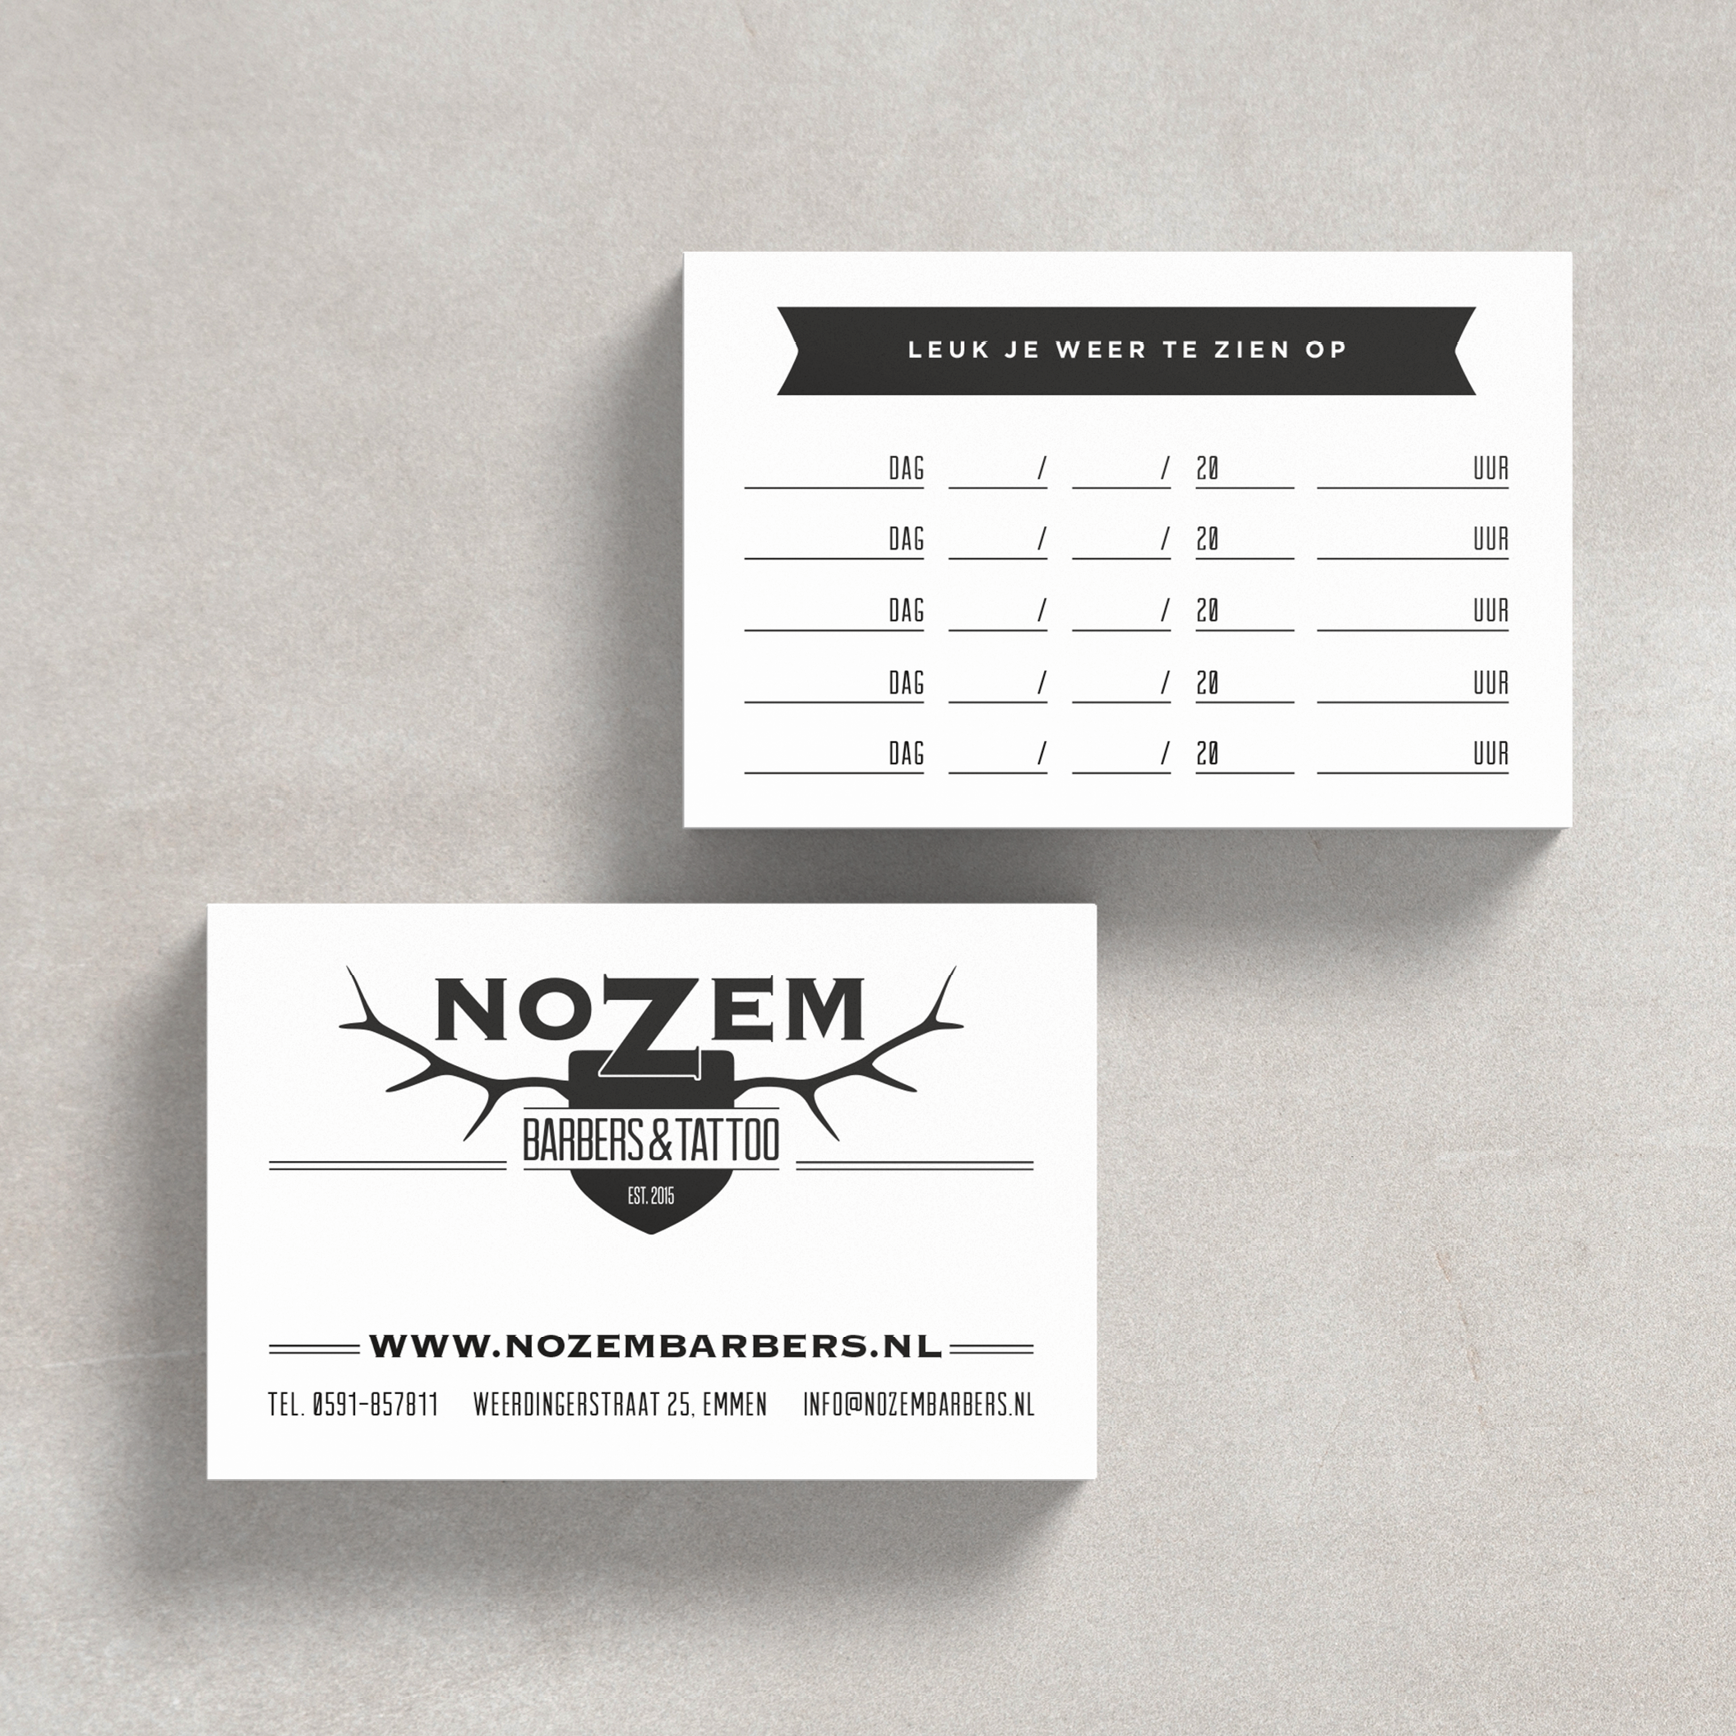 Nozem Barbers & Tattoo